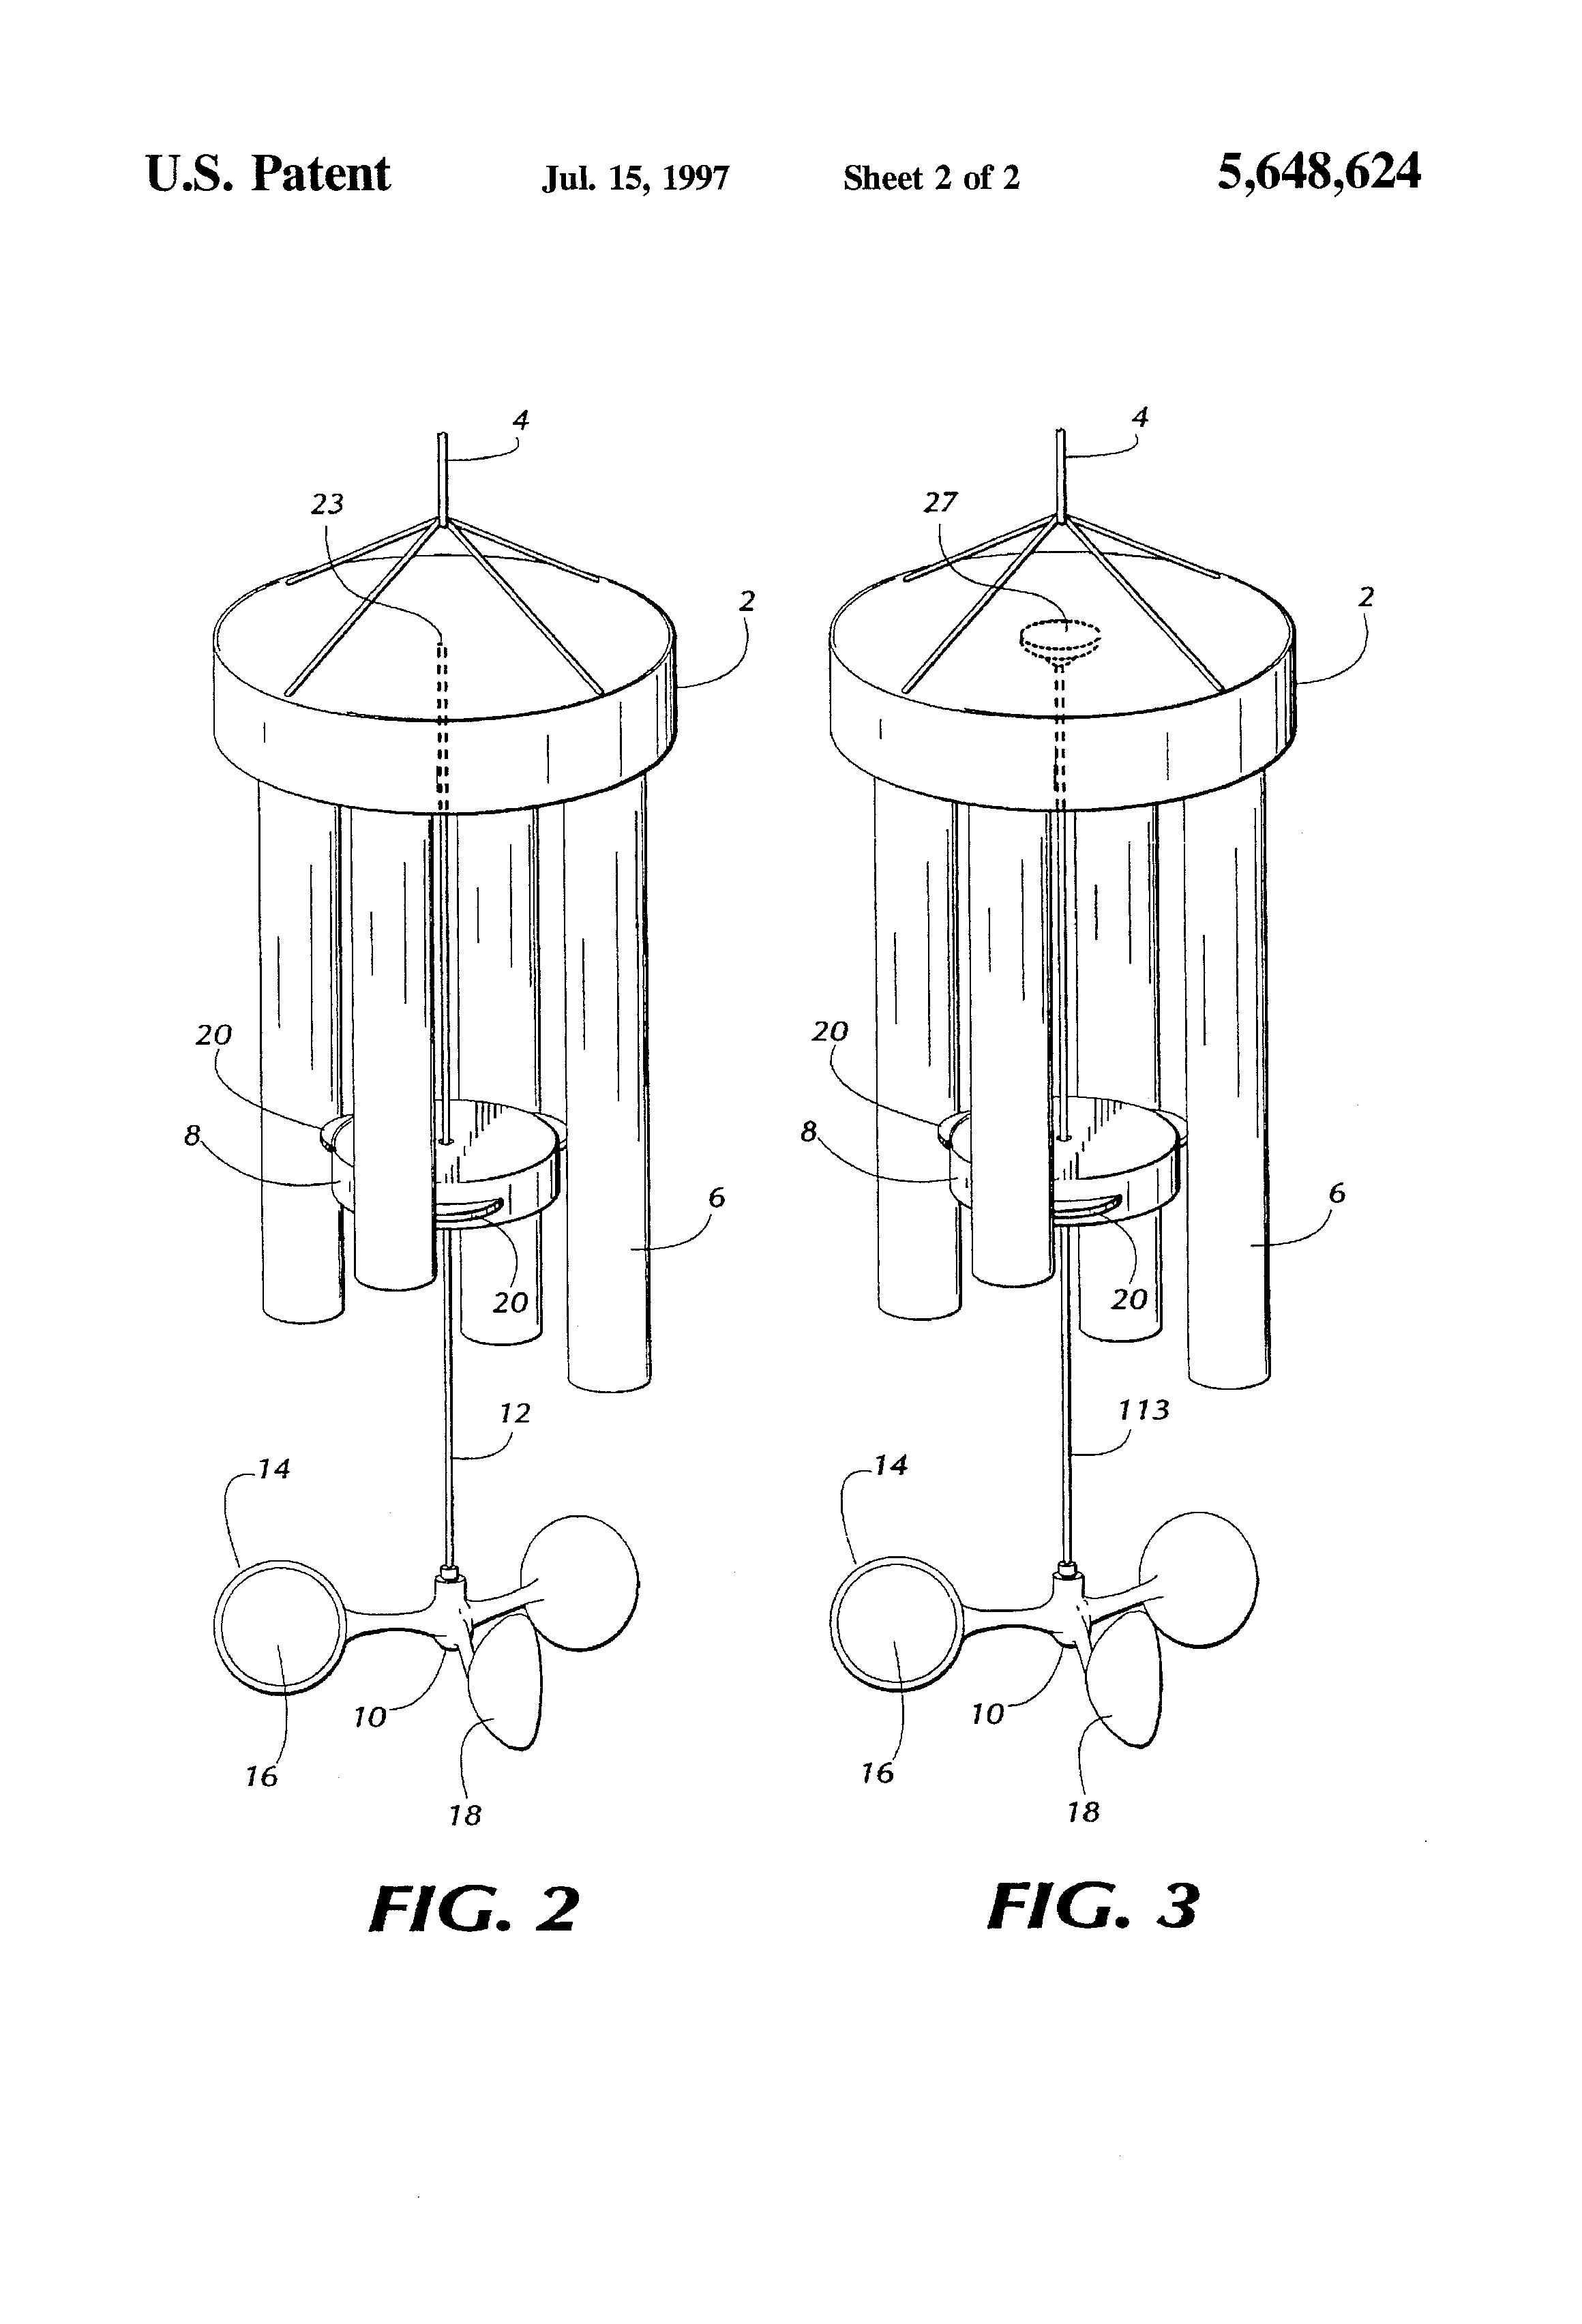 Coloring pages wind chimes ~ Patent US5648624 - Wind chime having a rotating striker ...